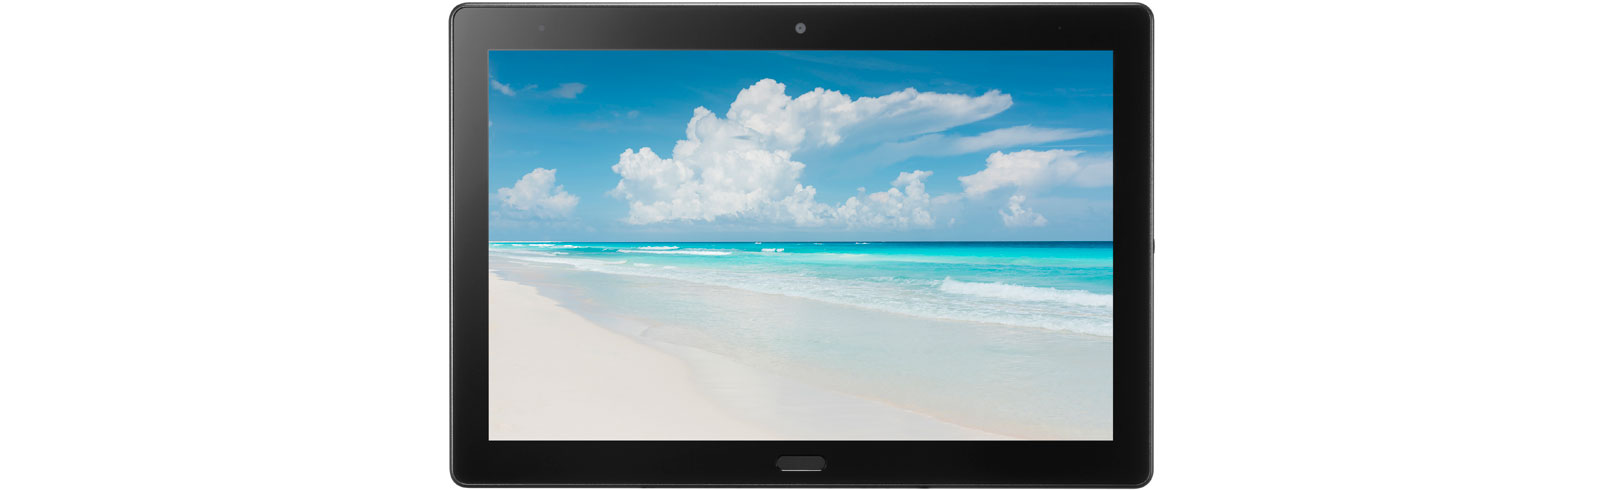 """Sharp unveils Corporate Tablet SH-T01 with a 10.1"""" WUXGA display, 6500 mAh battery, IP68 rating"""